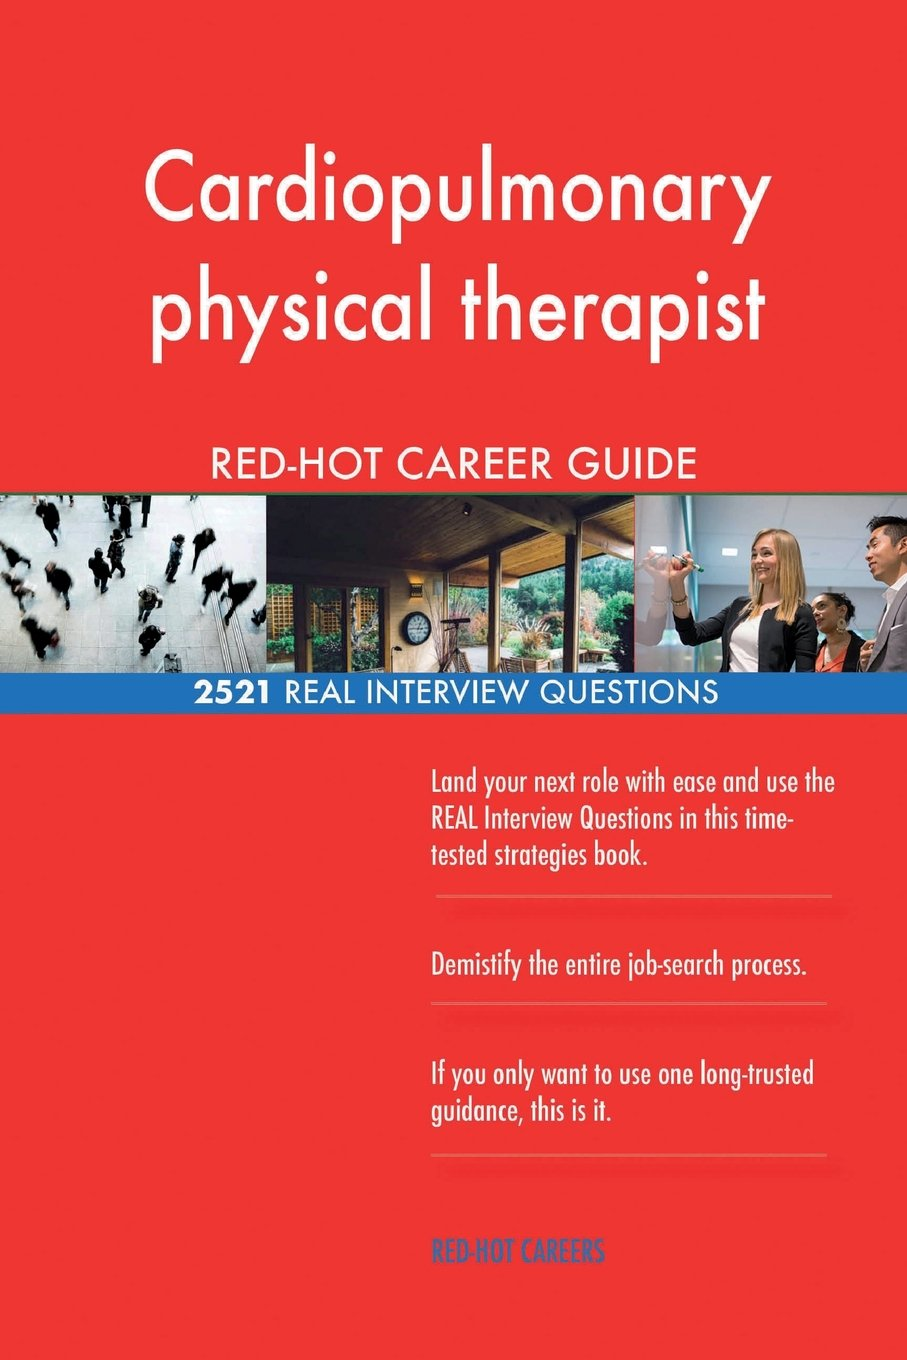 Cardiopulmonary physical therapist RED-HOT Career; 2521 REAL Interview Questions PDF